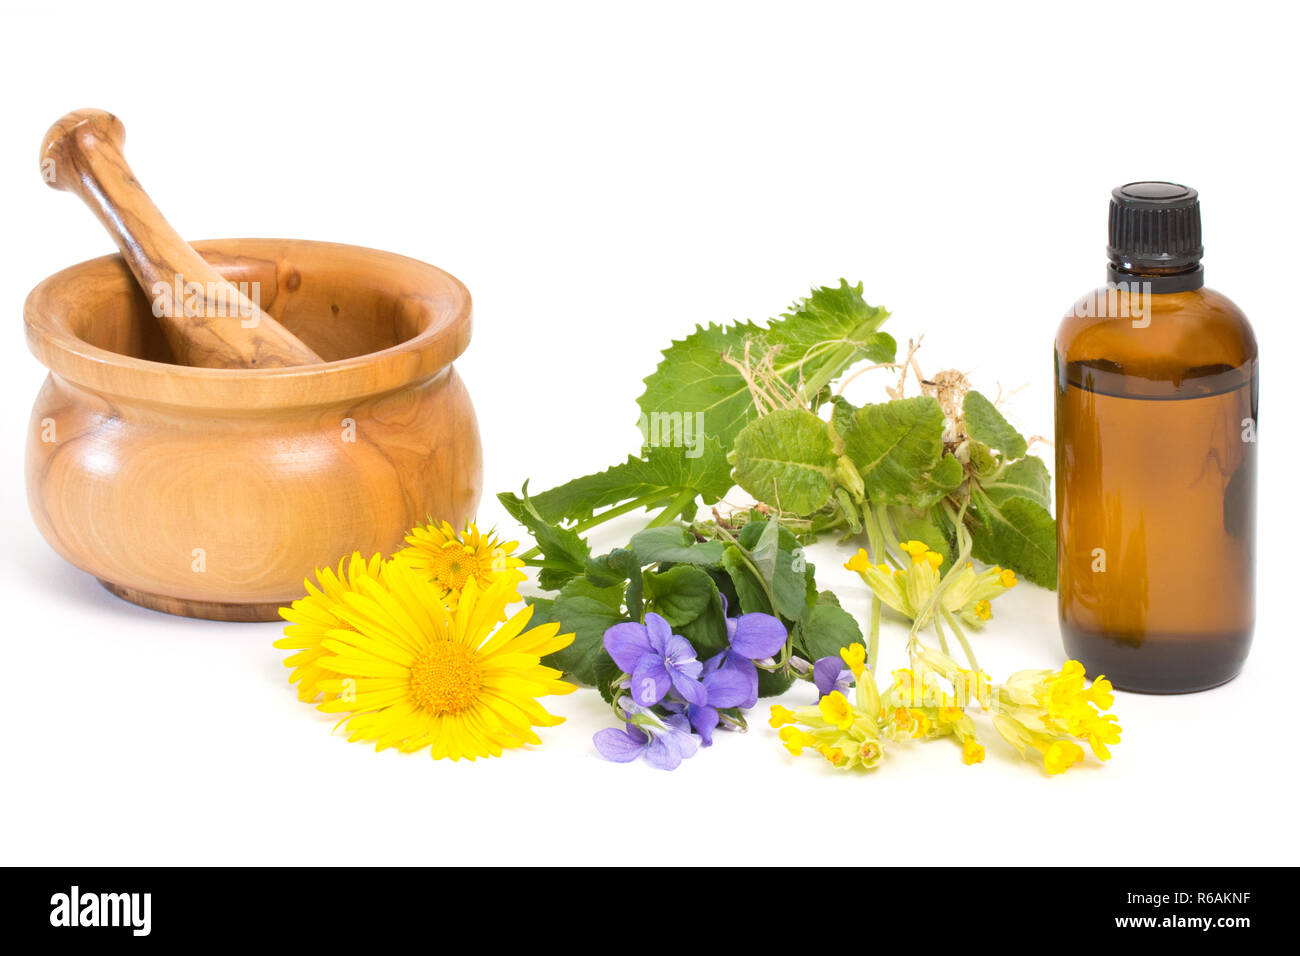 Different Medical Herbs With Mortar And Pestle Near Medicine Bottle - Stock Image